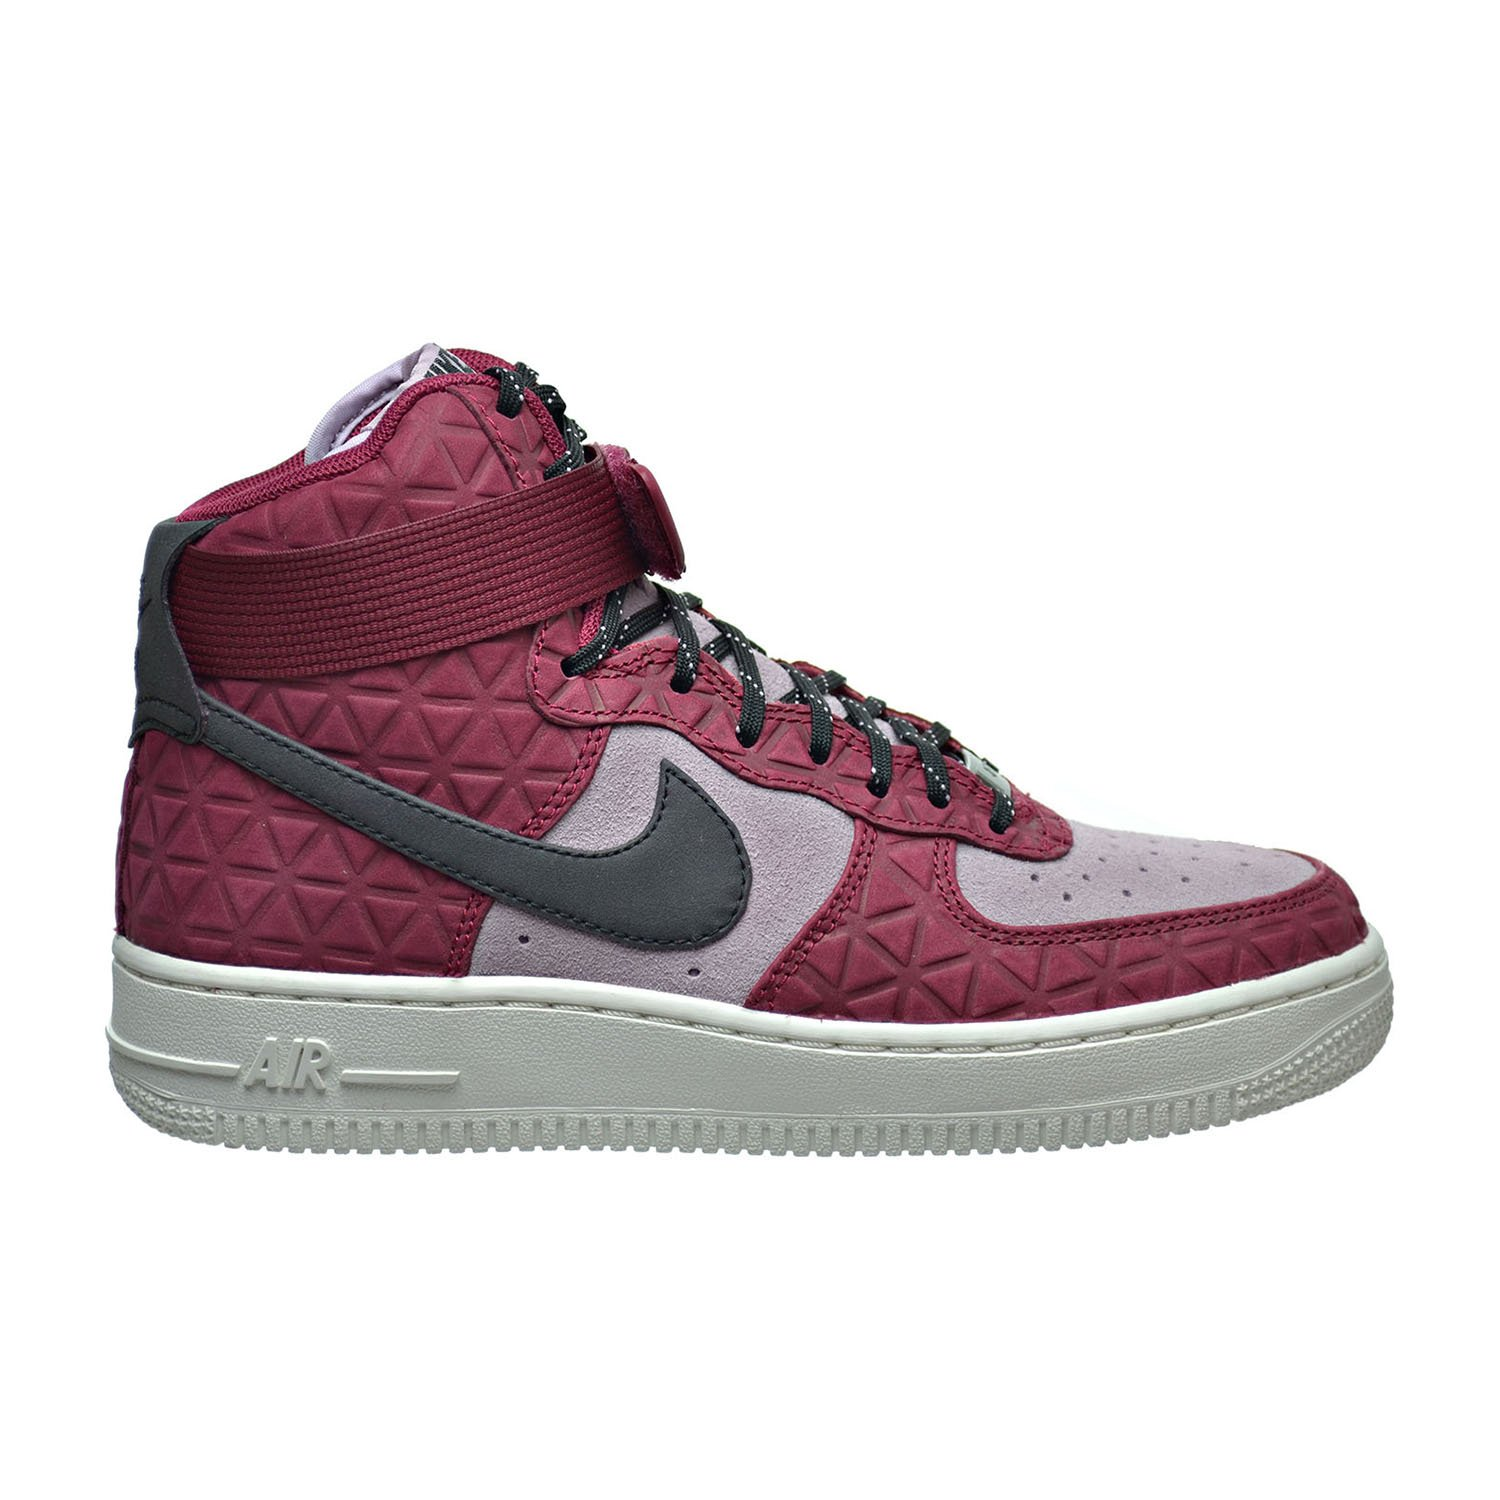 Nike Women's Air Force 1 Hi Premium Black/Black Gum Med Brown Sail Basketball Shoe B00IFOQXZO 8.5 B(M) US|Noble Red/Black-plum Fog-summit White